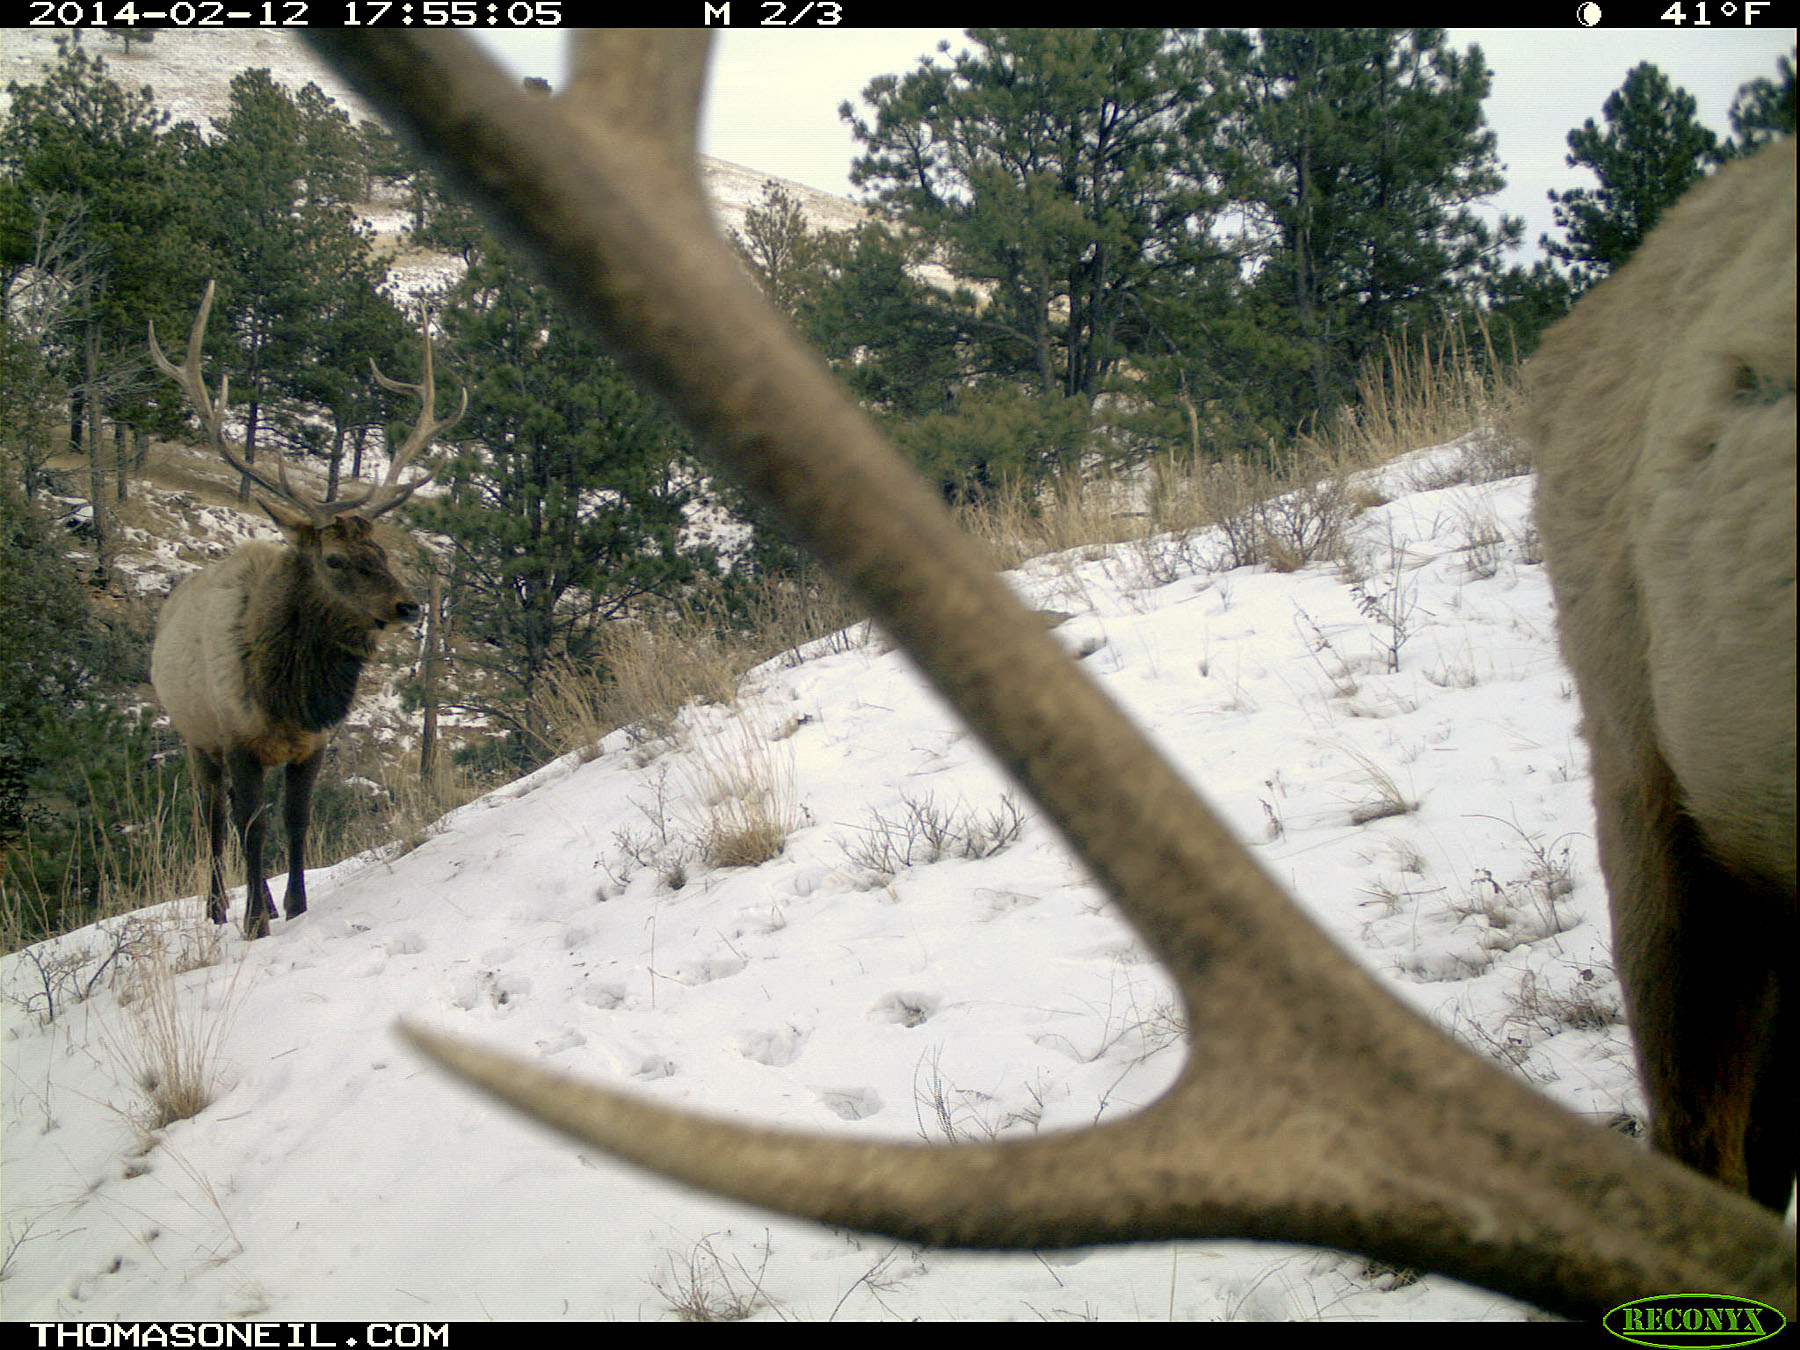 Elk on trail camera, Wind Cave National Park, South Dakota, Feb. 12, 2014.